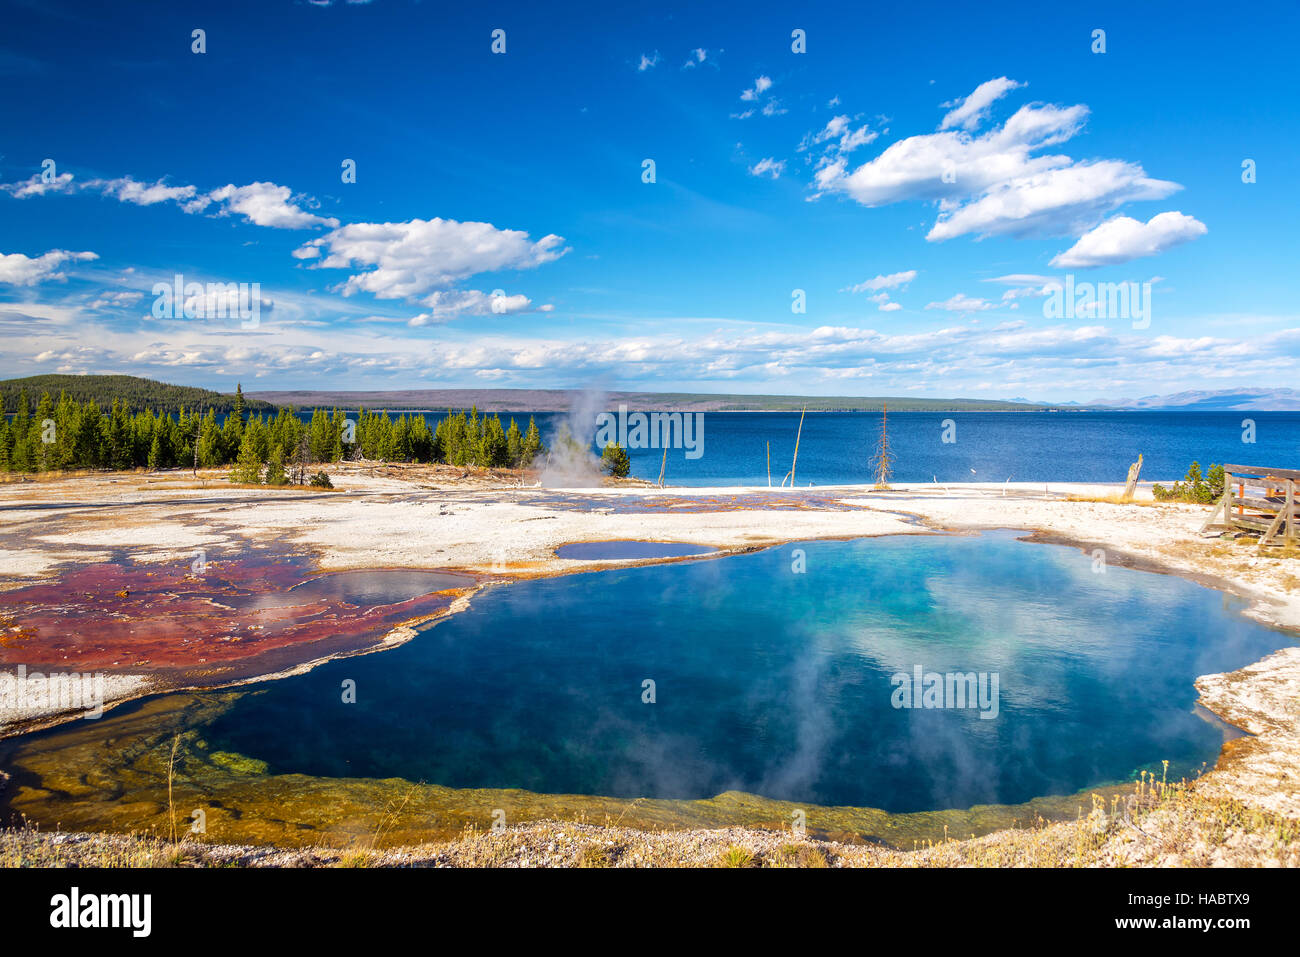 Bacteria mat and abyss pool at the West Thumb Geyser Basin in Yellowstone National Park - Stock Image